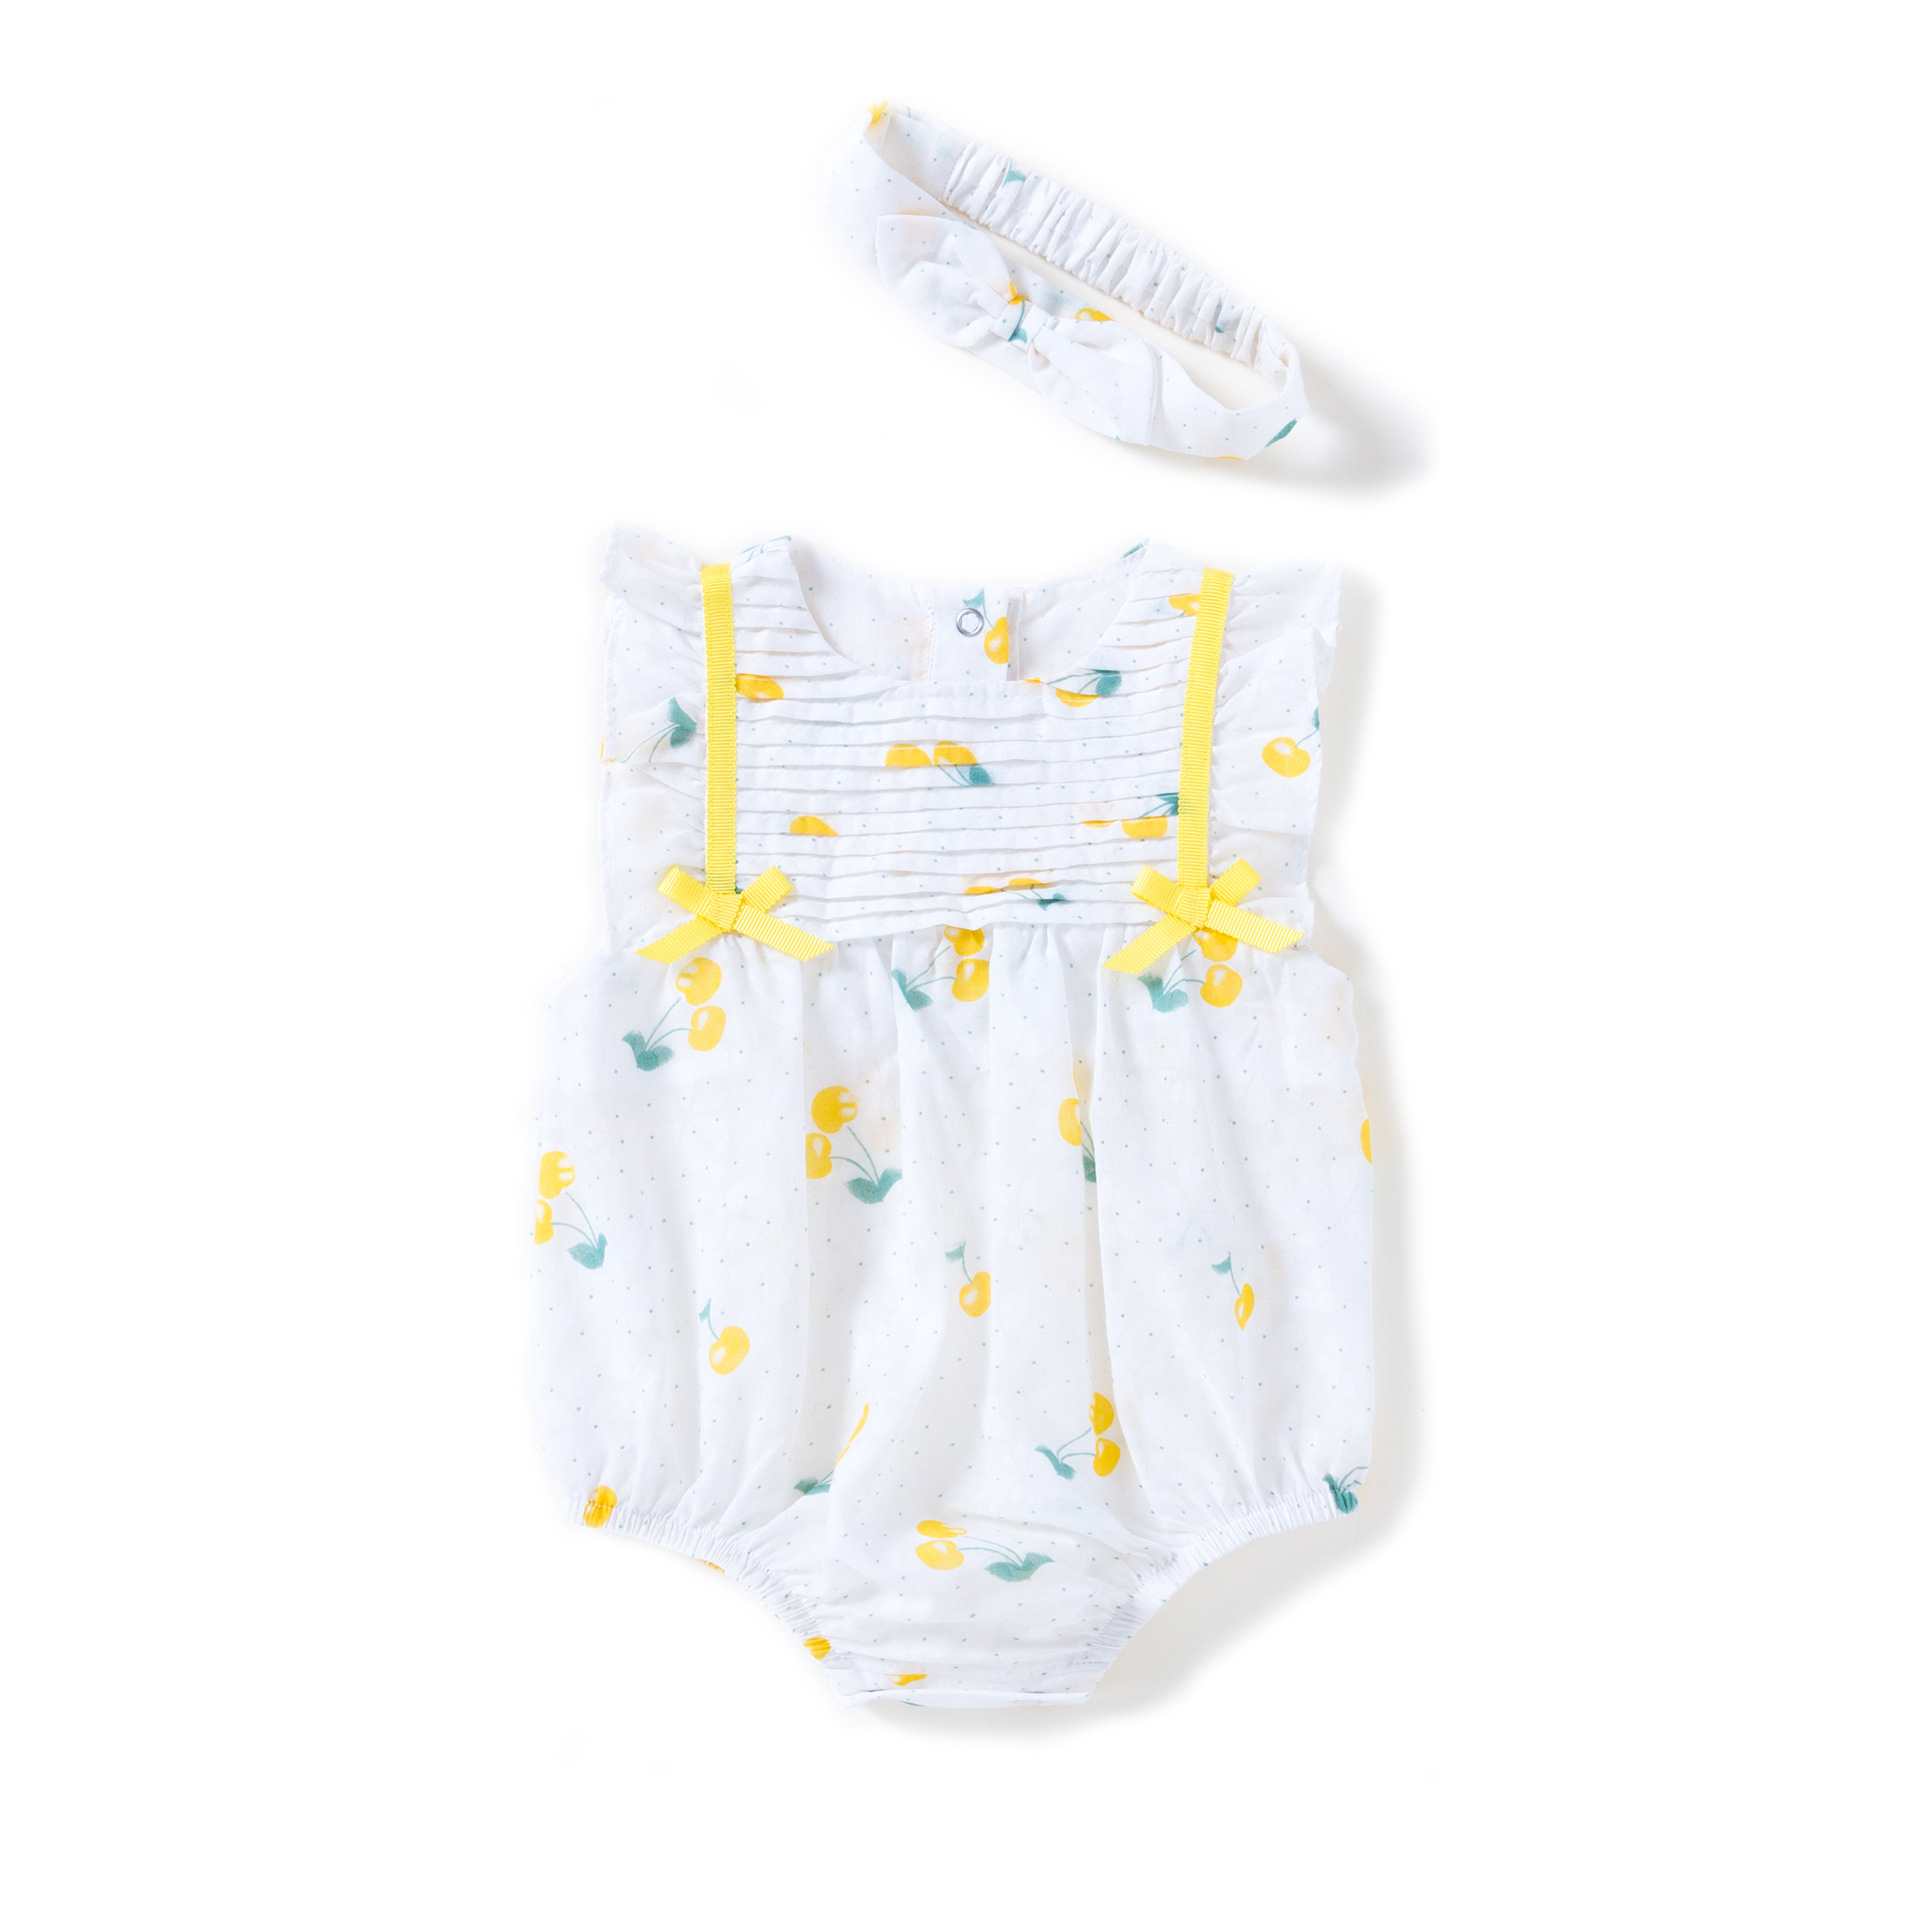 Baby Girls Clothing Sets Summer New Cotton Red/yellow Small Cherry Jumpsuit Bow knot Headband 2pcs Set Baby Girl Clothes Suits